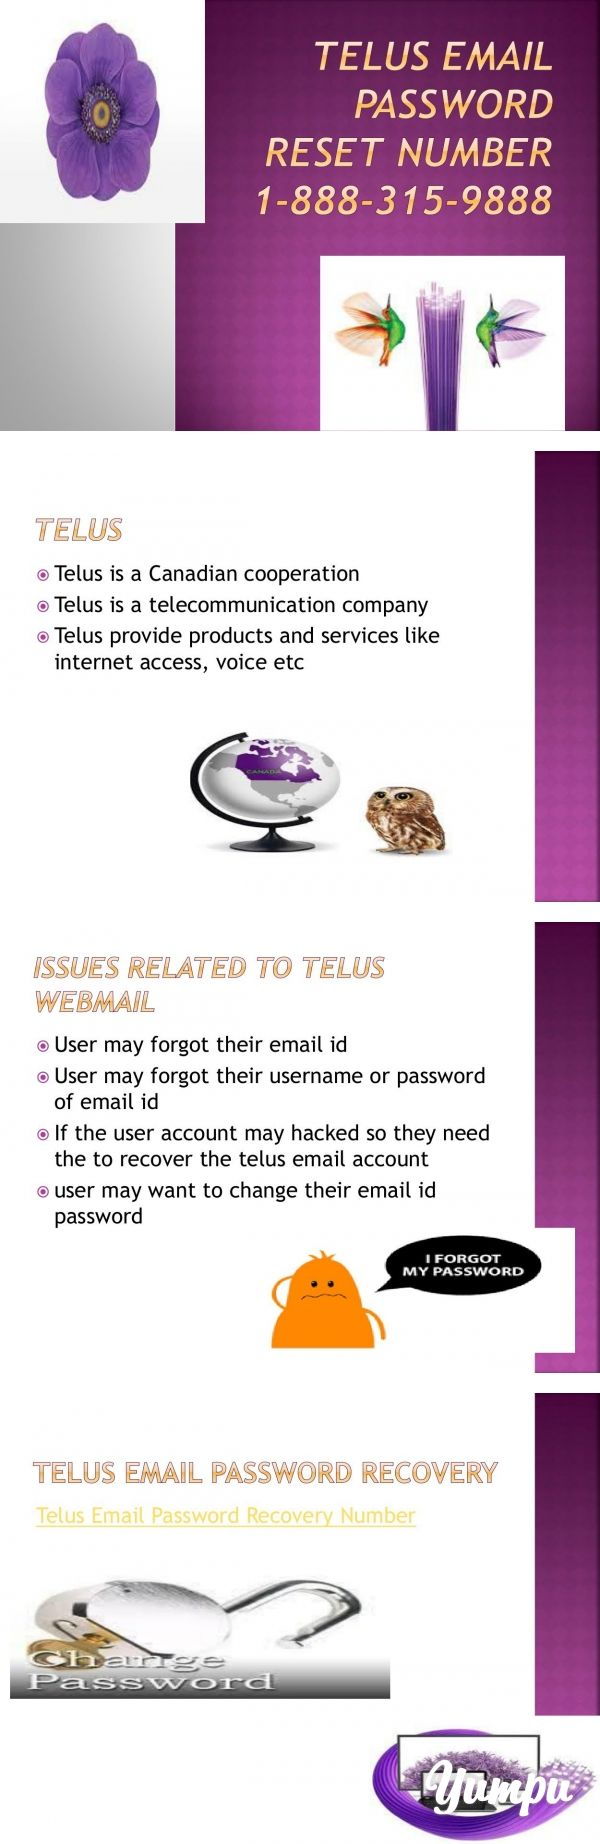 Pin by nora hall on Telus Email Password Change 1877201